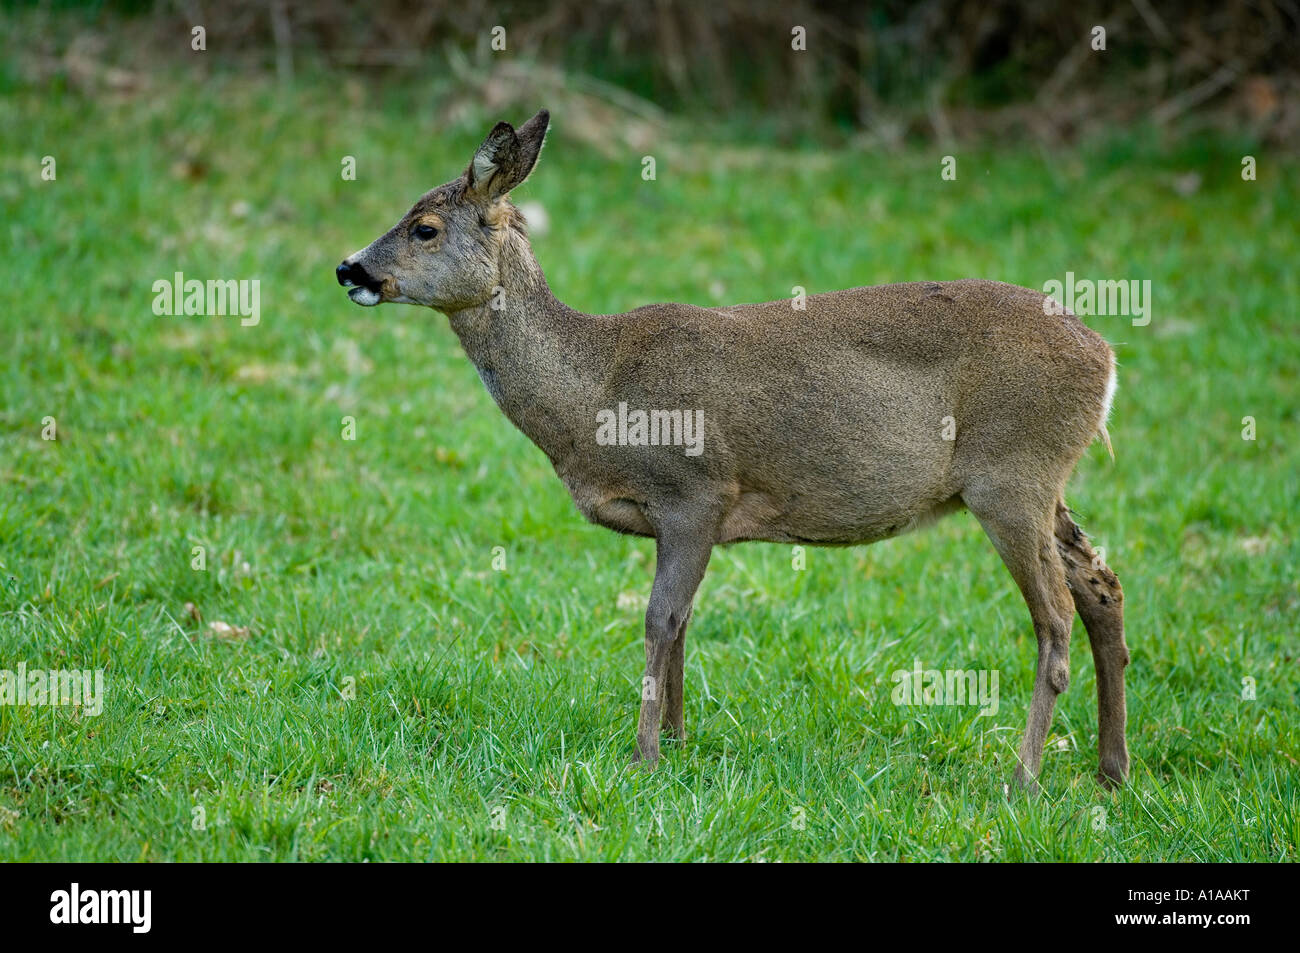 Pregnant Deer High Resolution Stock Photography And Images Alamy